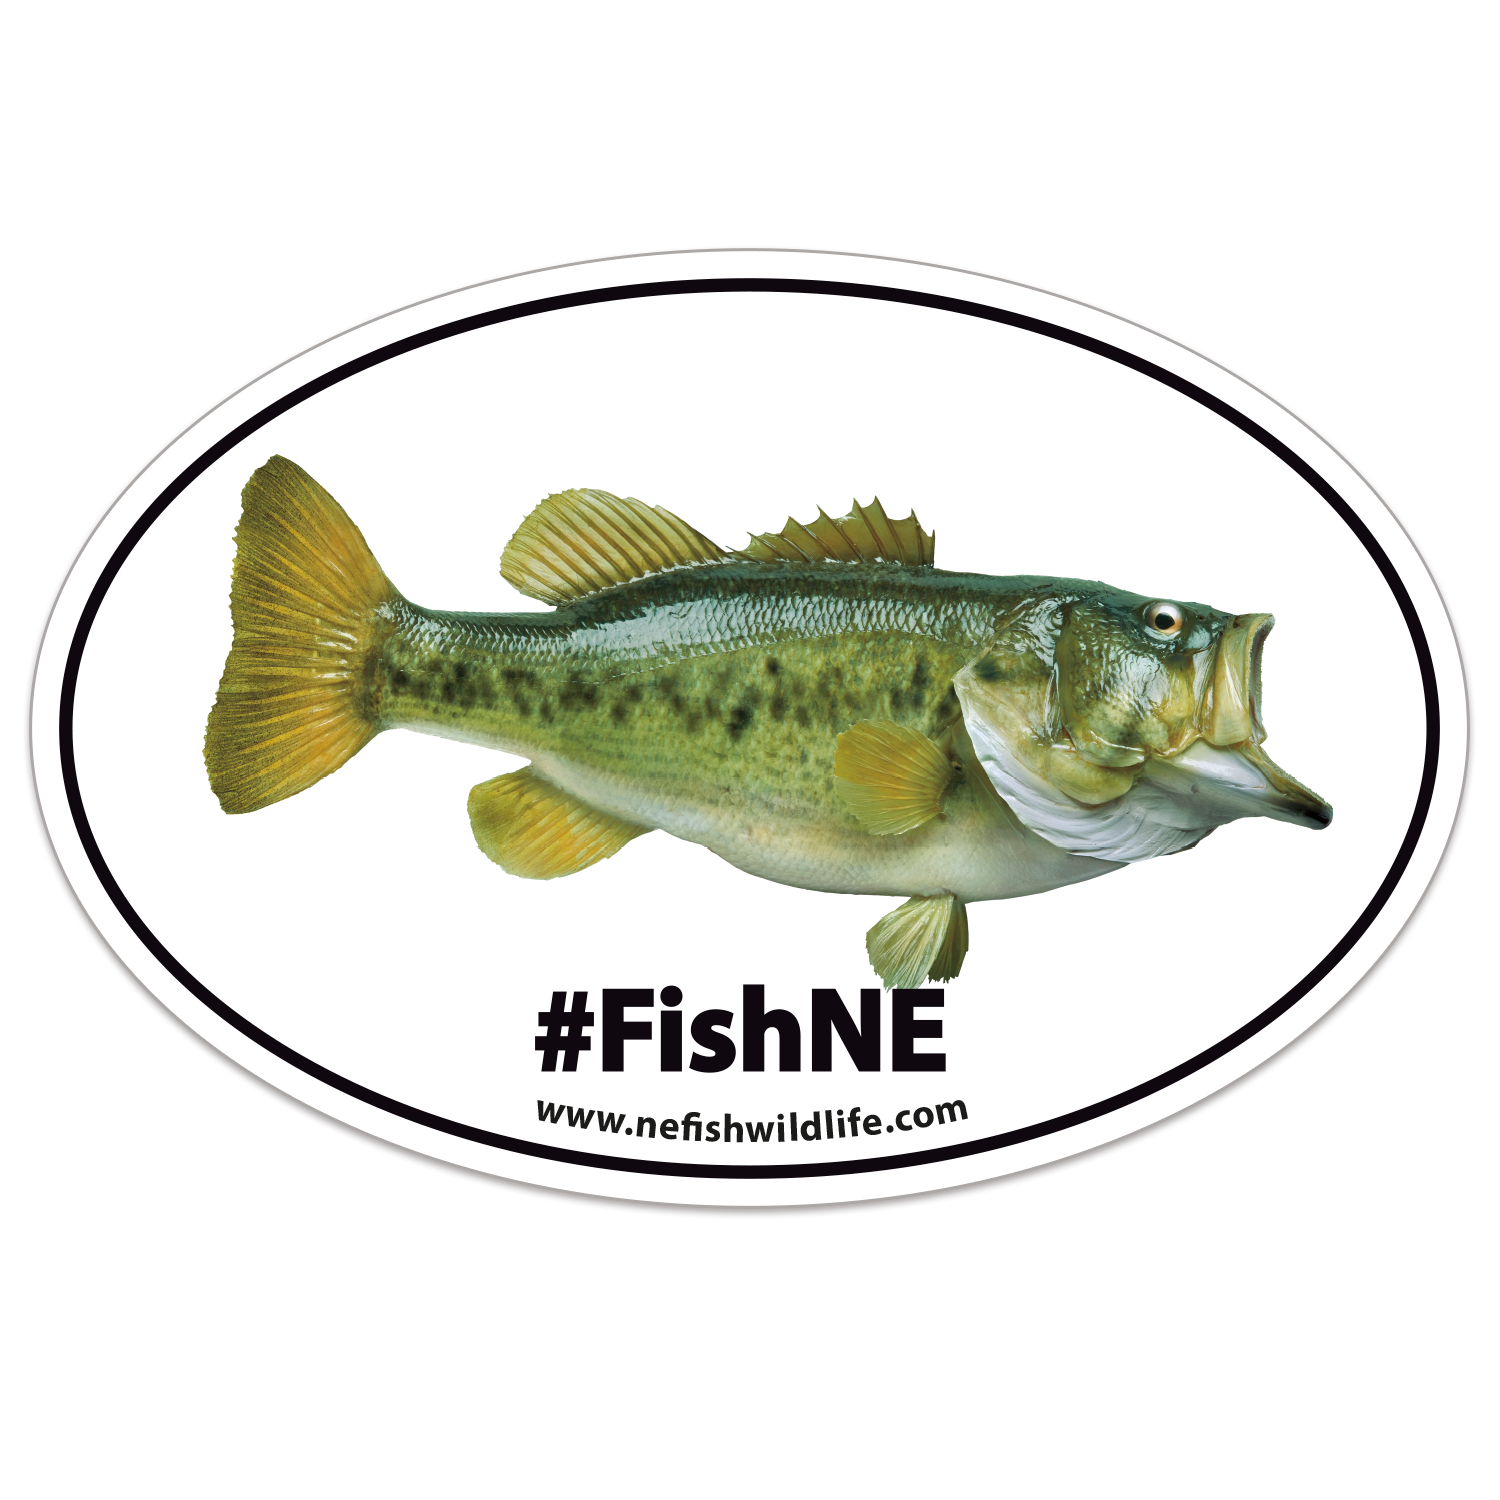 https://www.sswprinting.com/images/products_gallery_images/43824_FishNE_hi-res.png